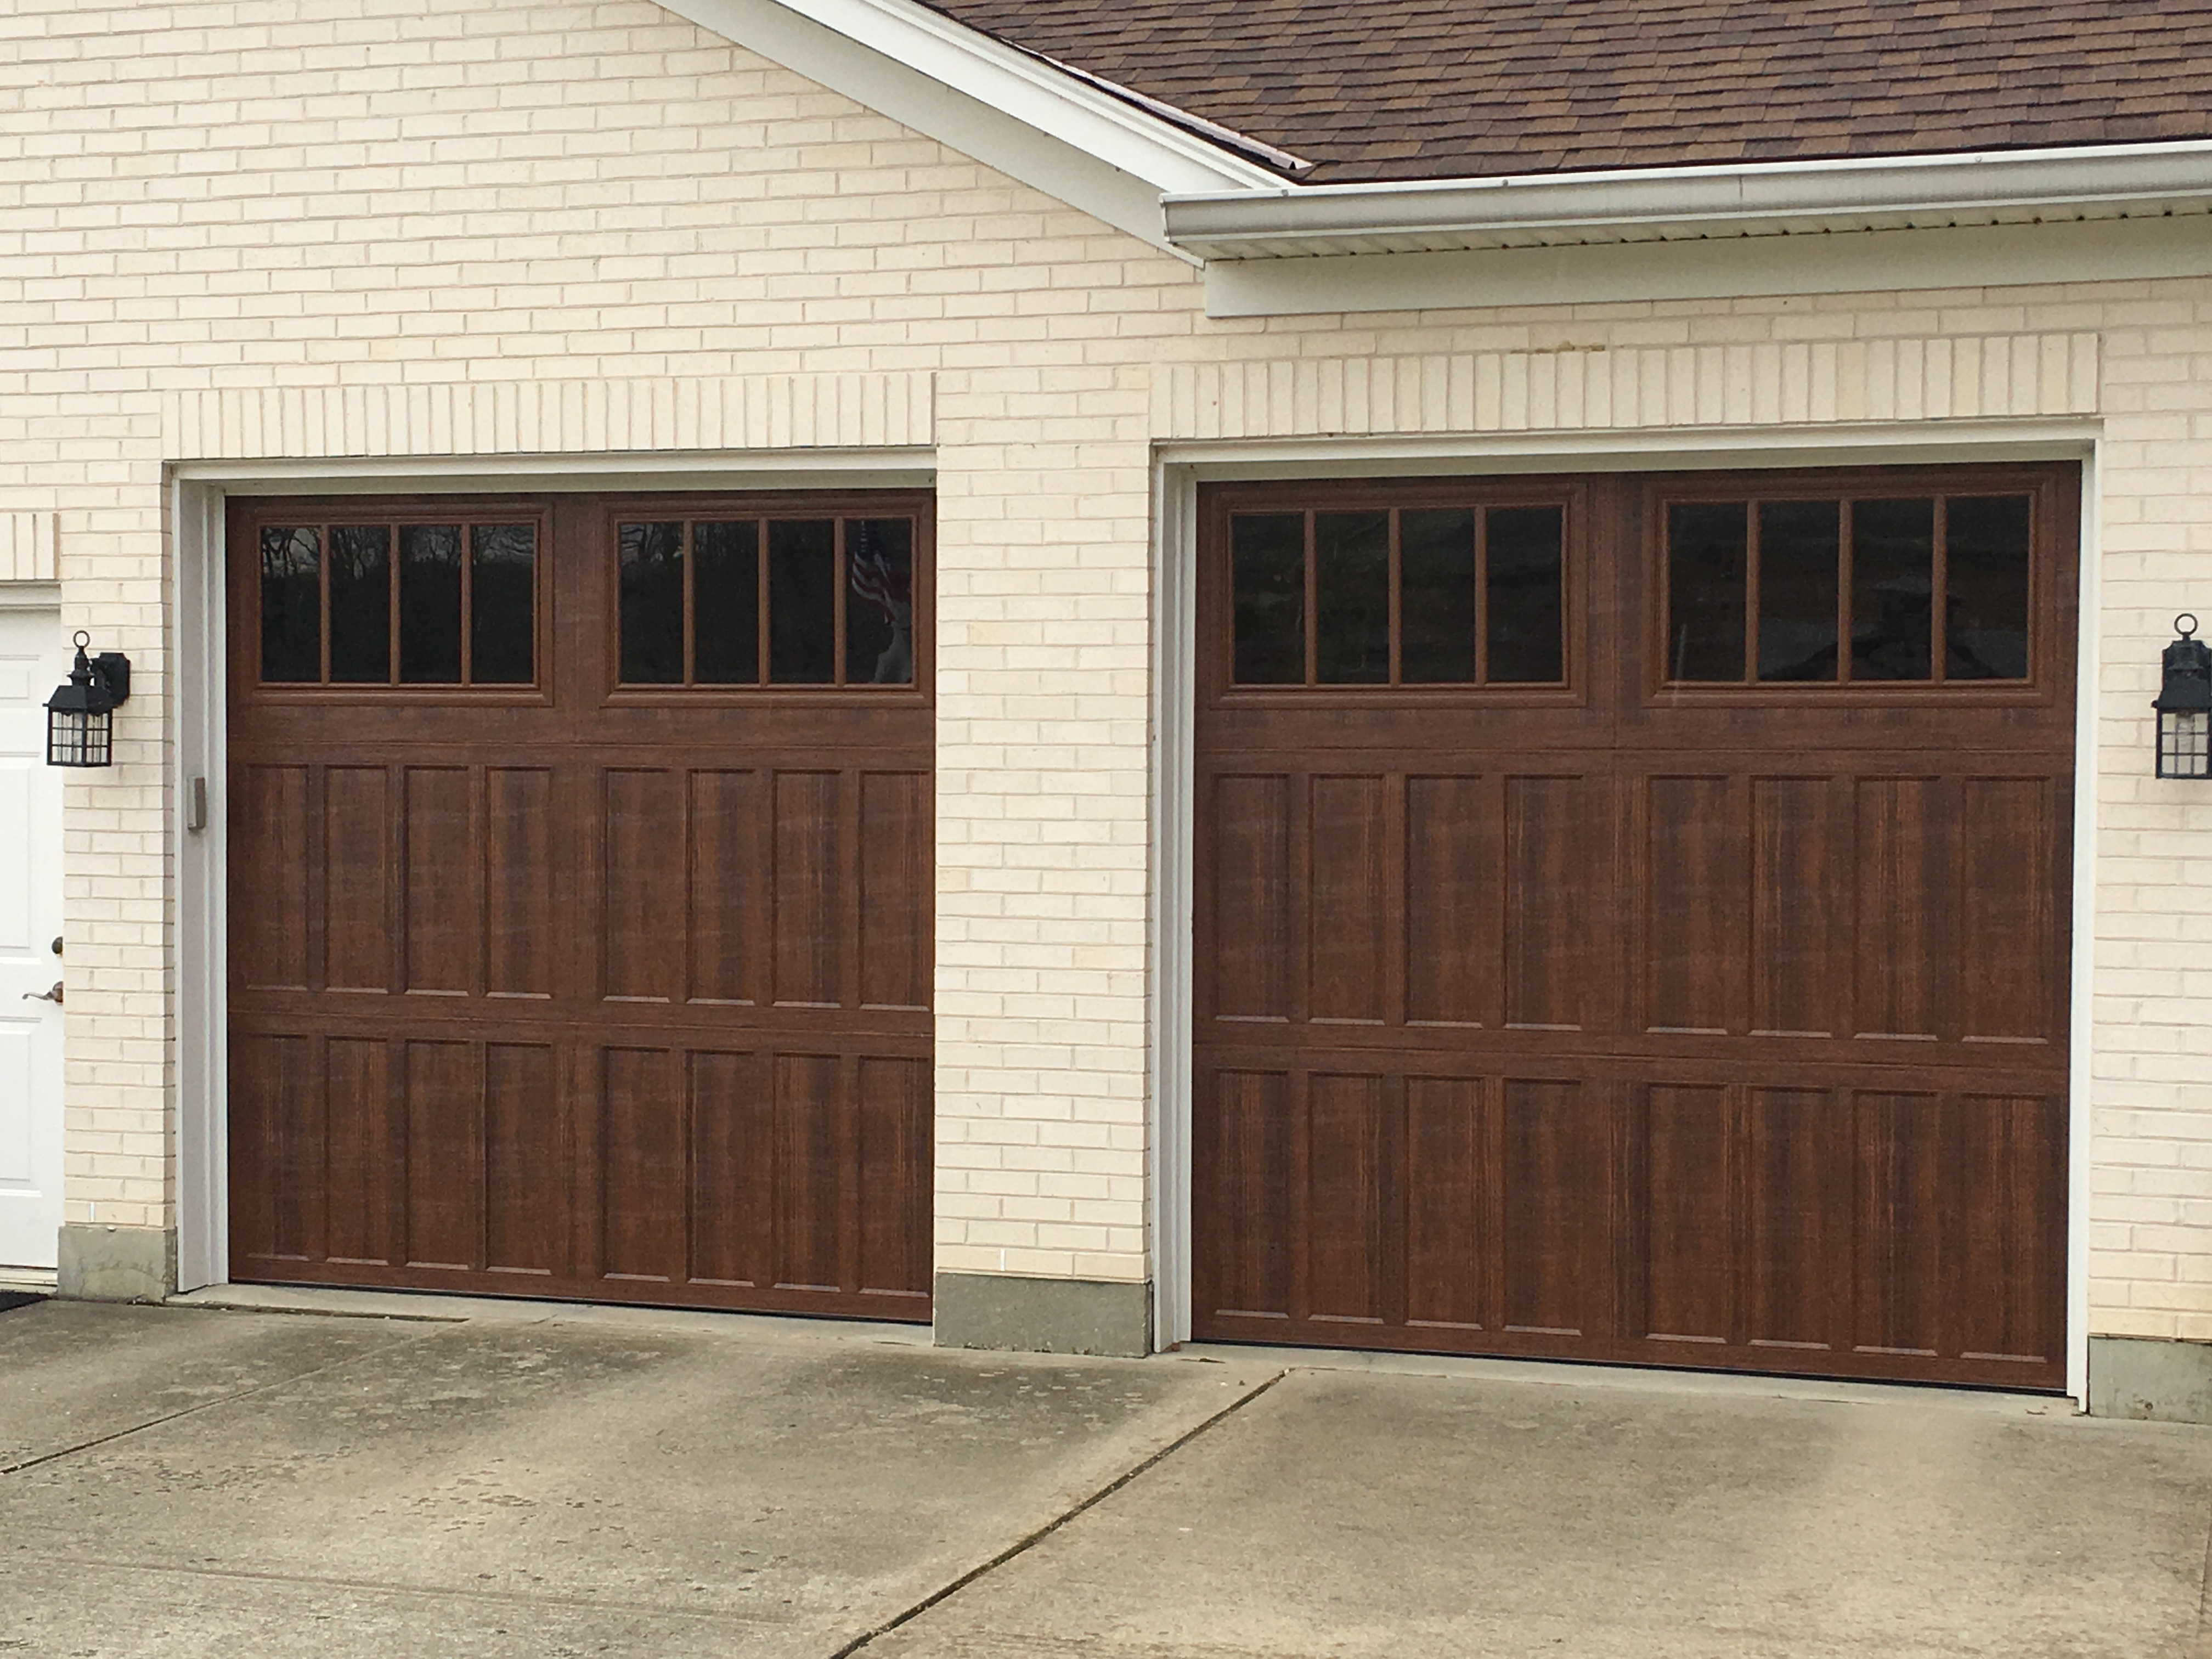 Garage Door Parts Near My Location Cincinnati Garage Doors Cincinnati Garage Door Company